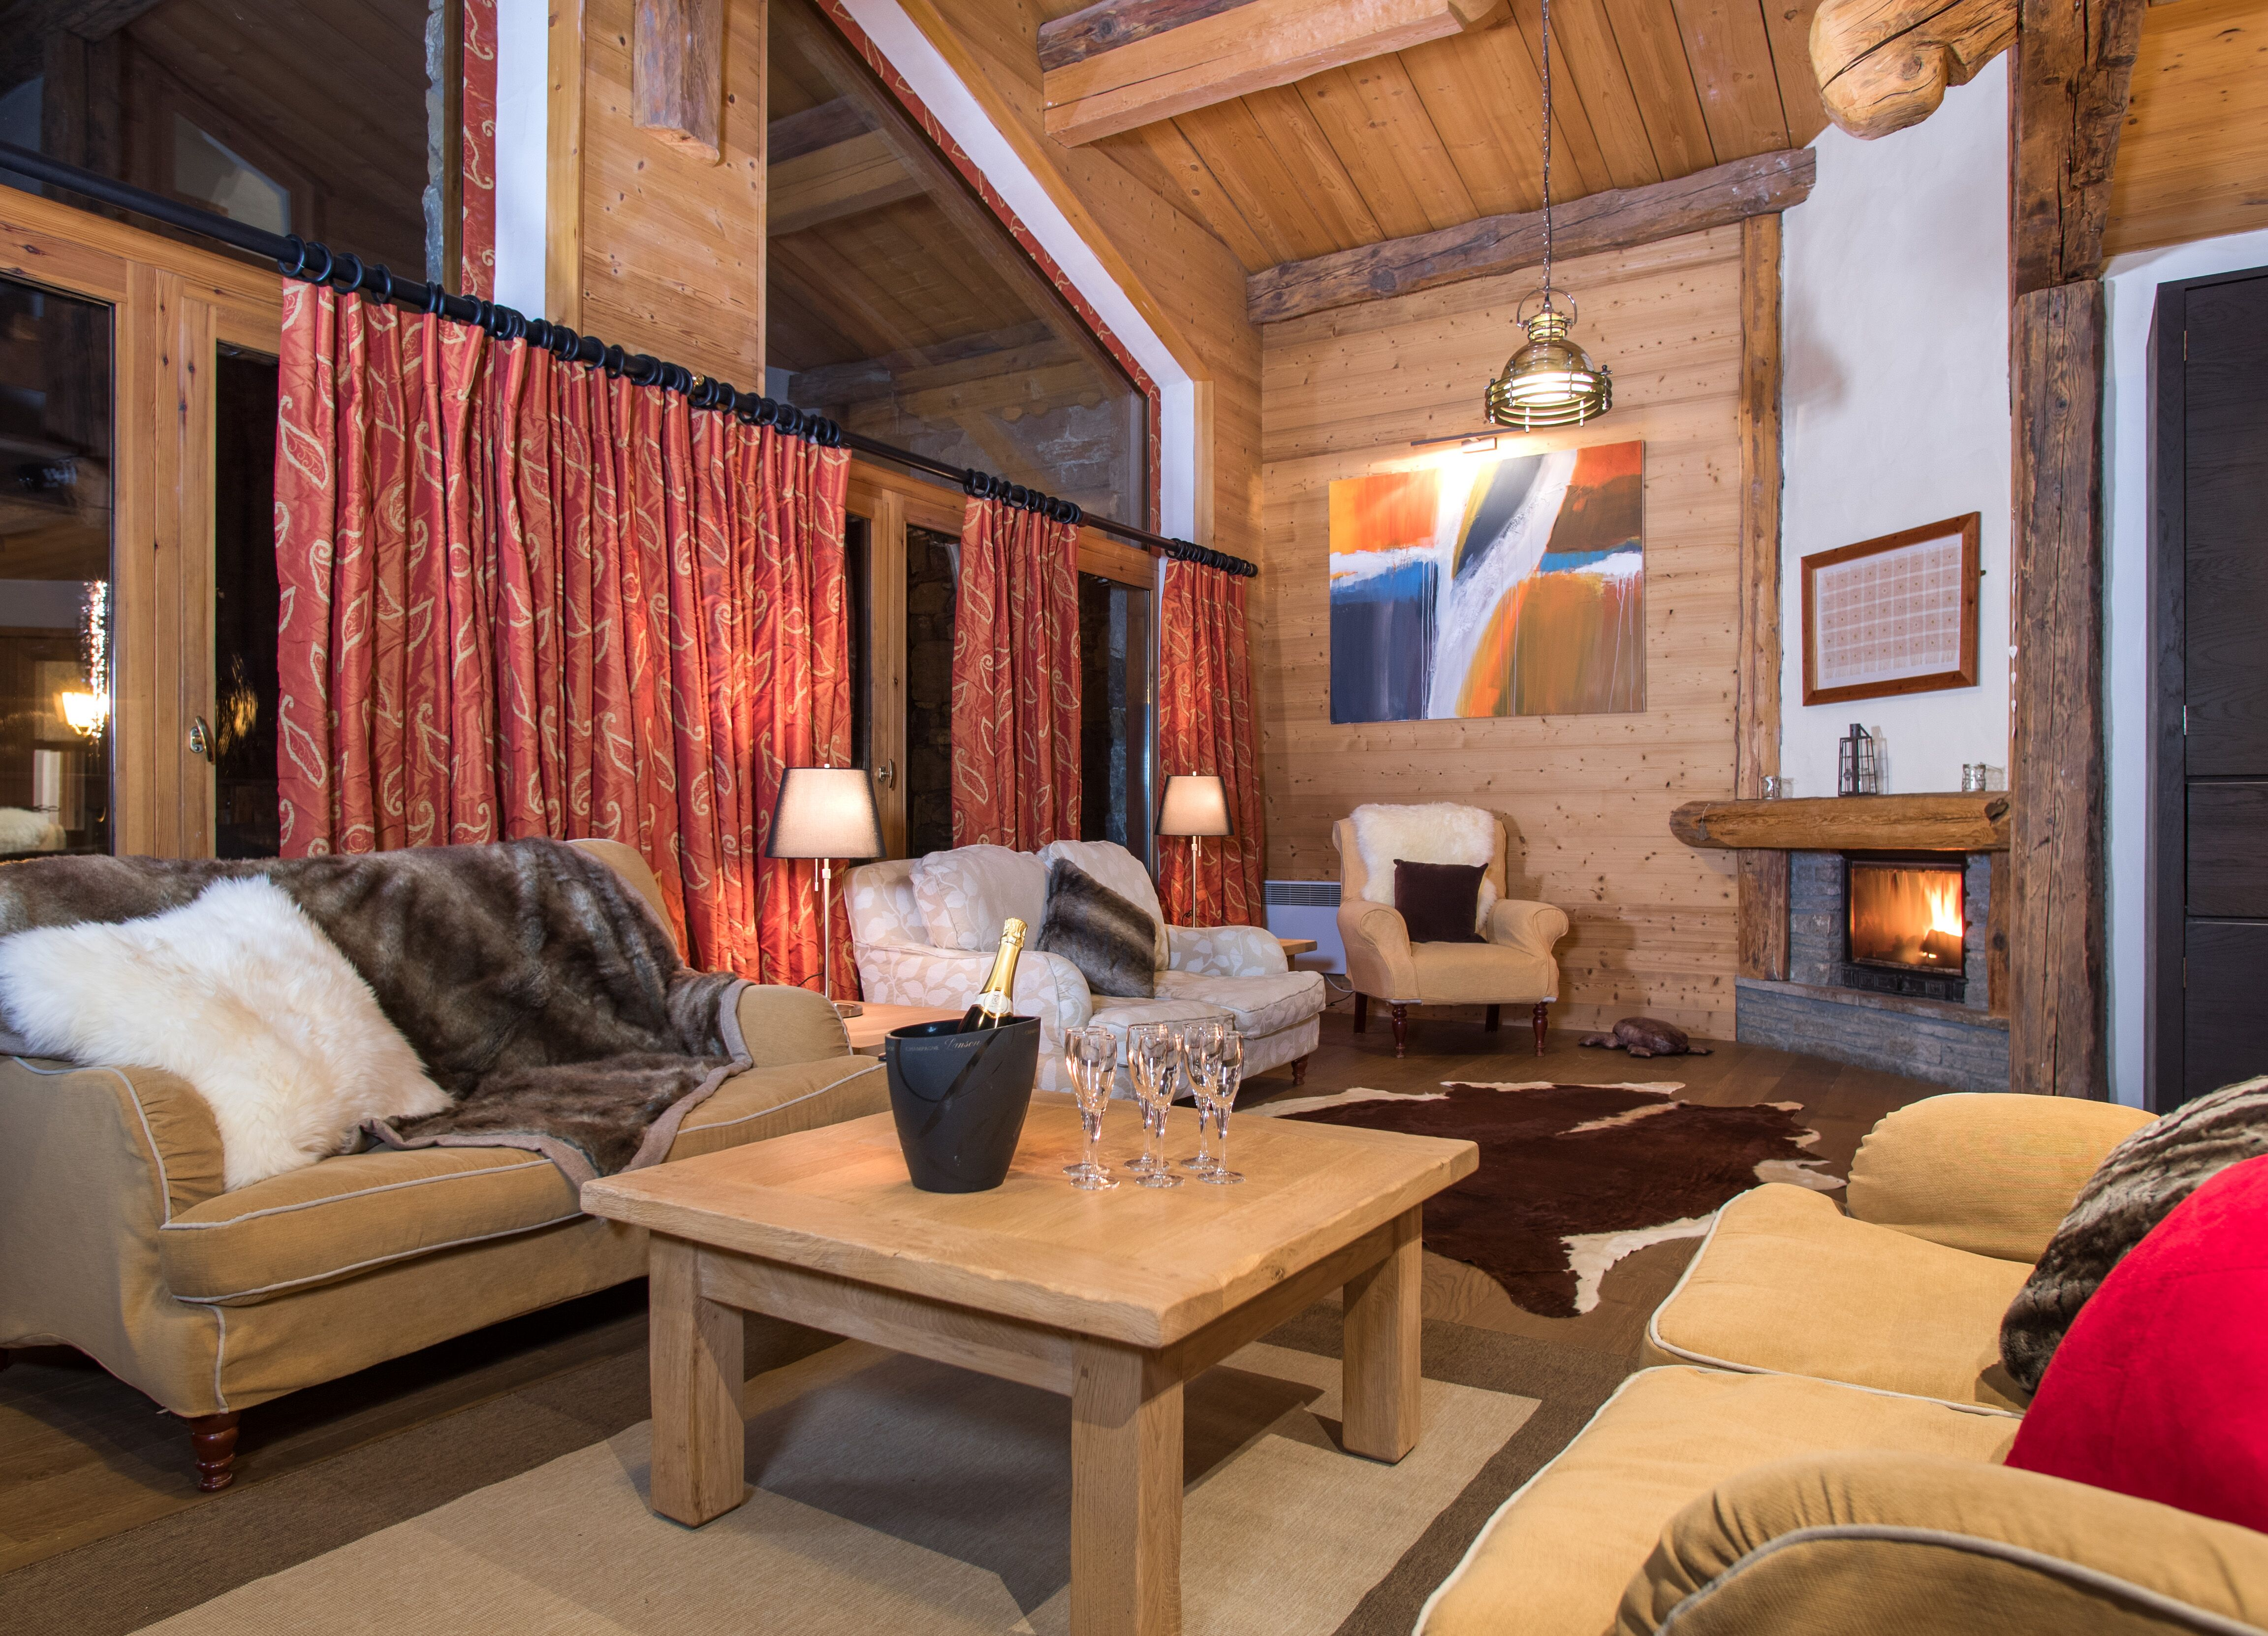 The Farmhouse Val D Isere Bellevarde Lodges Val D Isere The Snowco